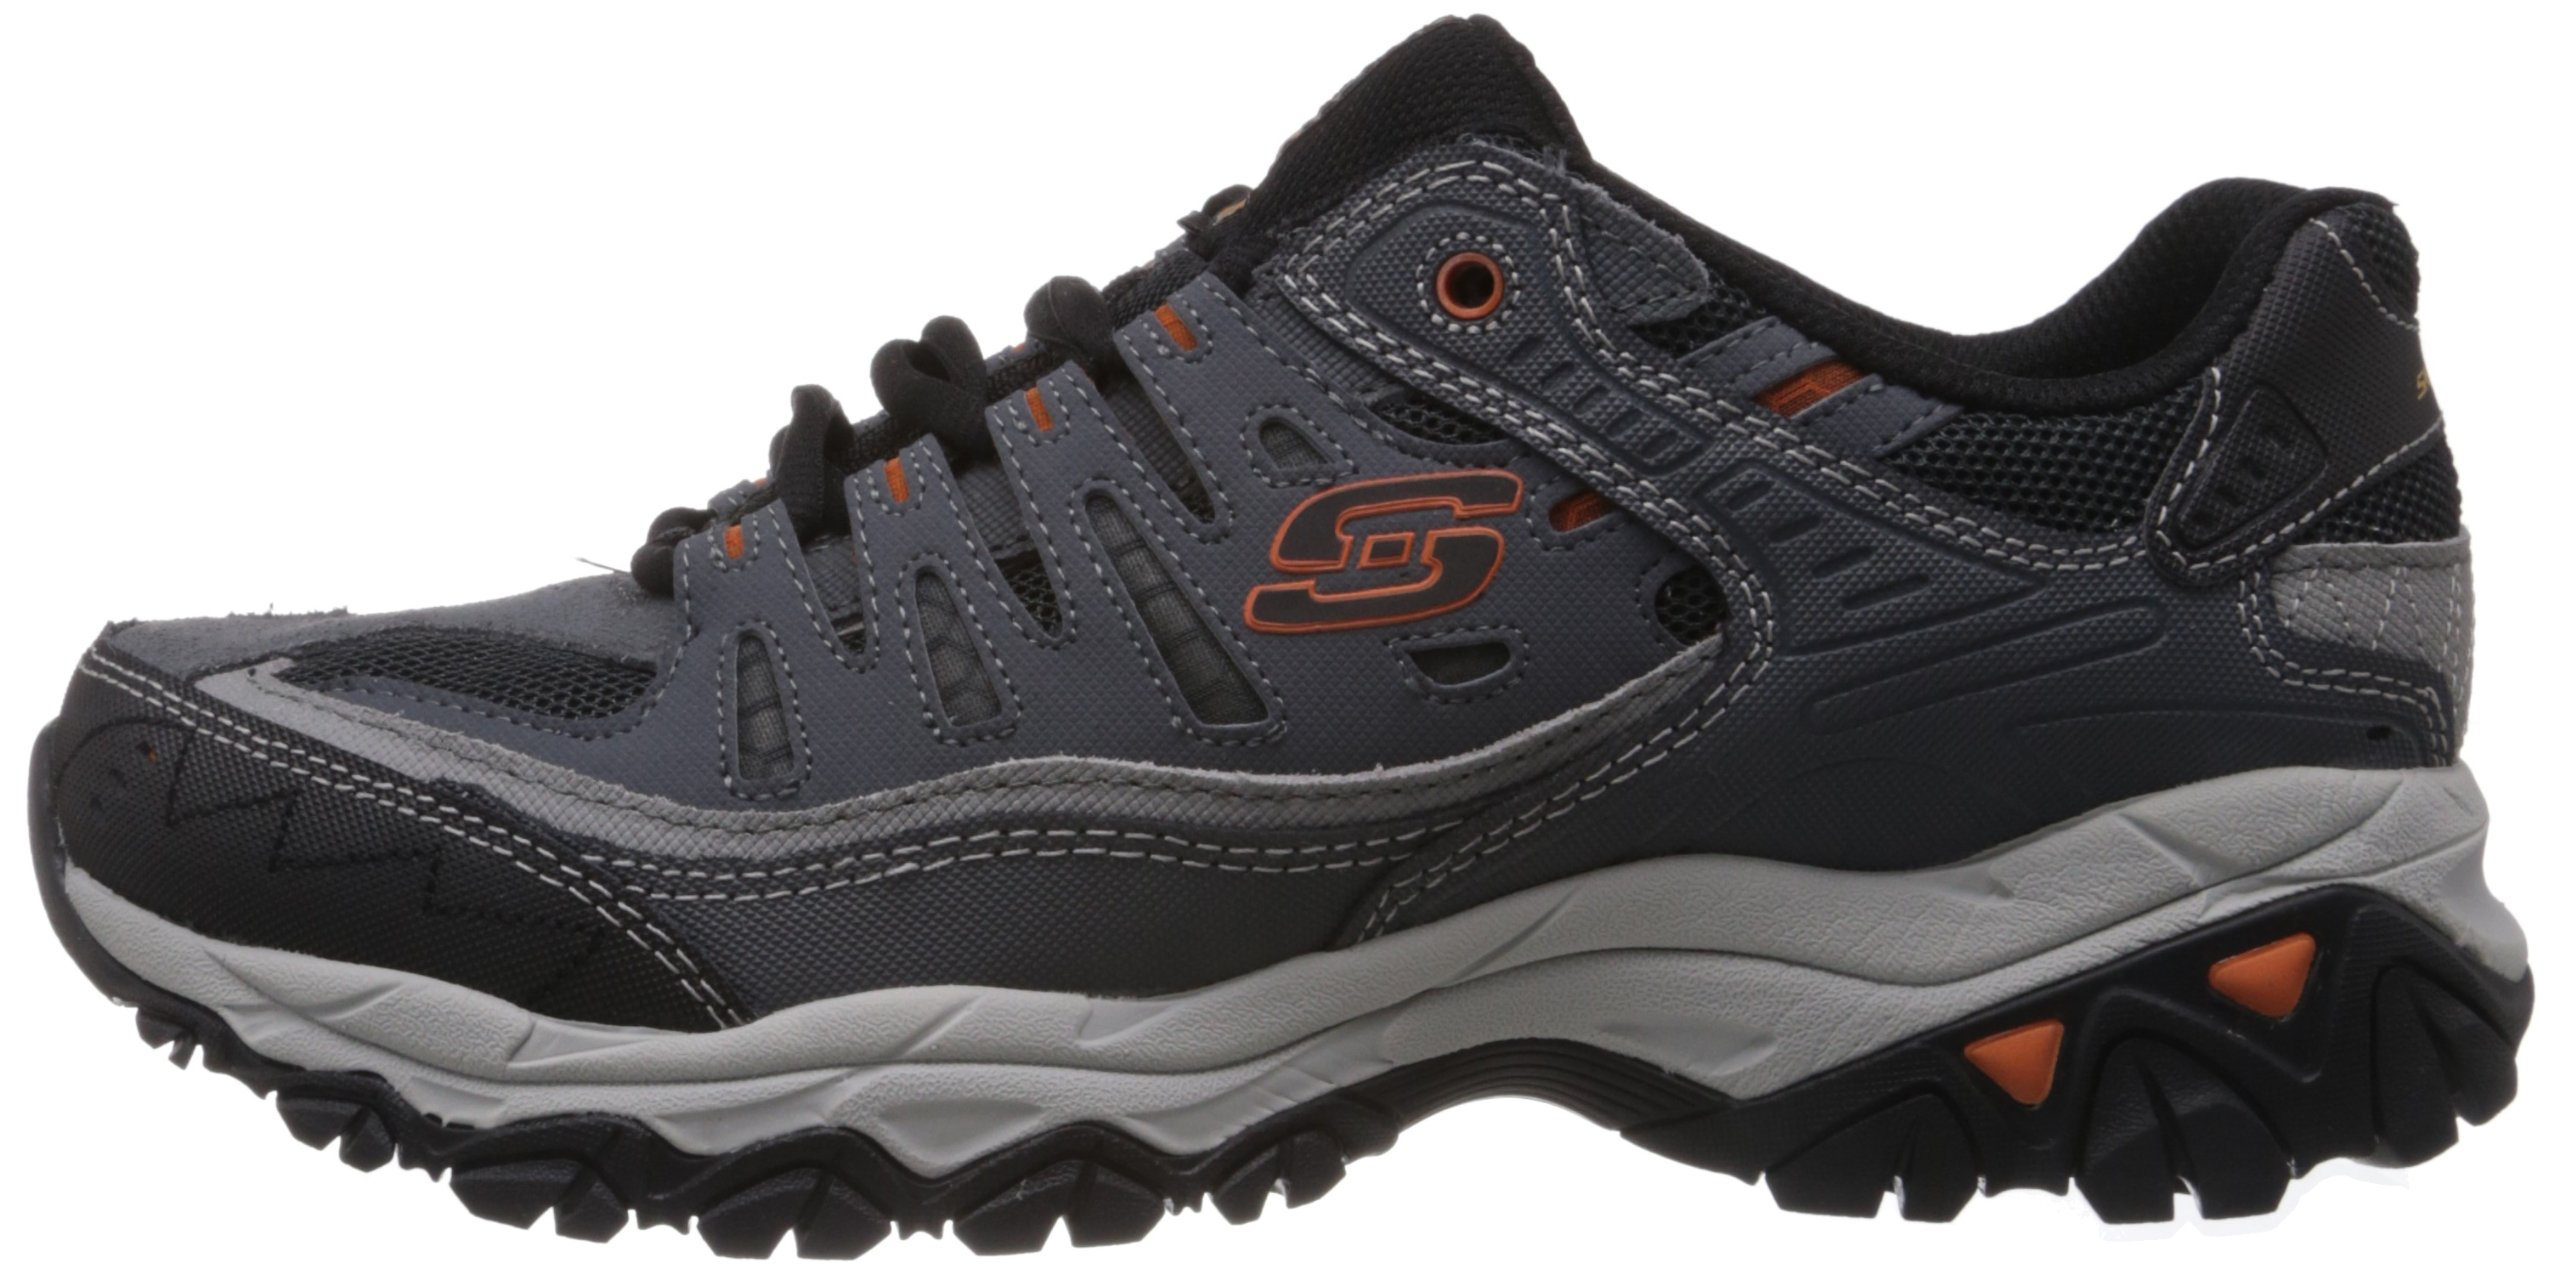 Skechers Sport Men's Afterburn Memory Foam Lace-Up Sneaker, Charcoal, 7 M US by Skechers (Image #5)